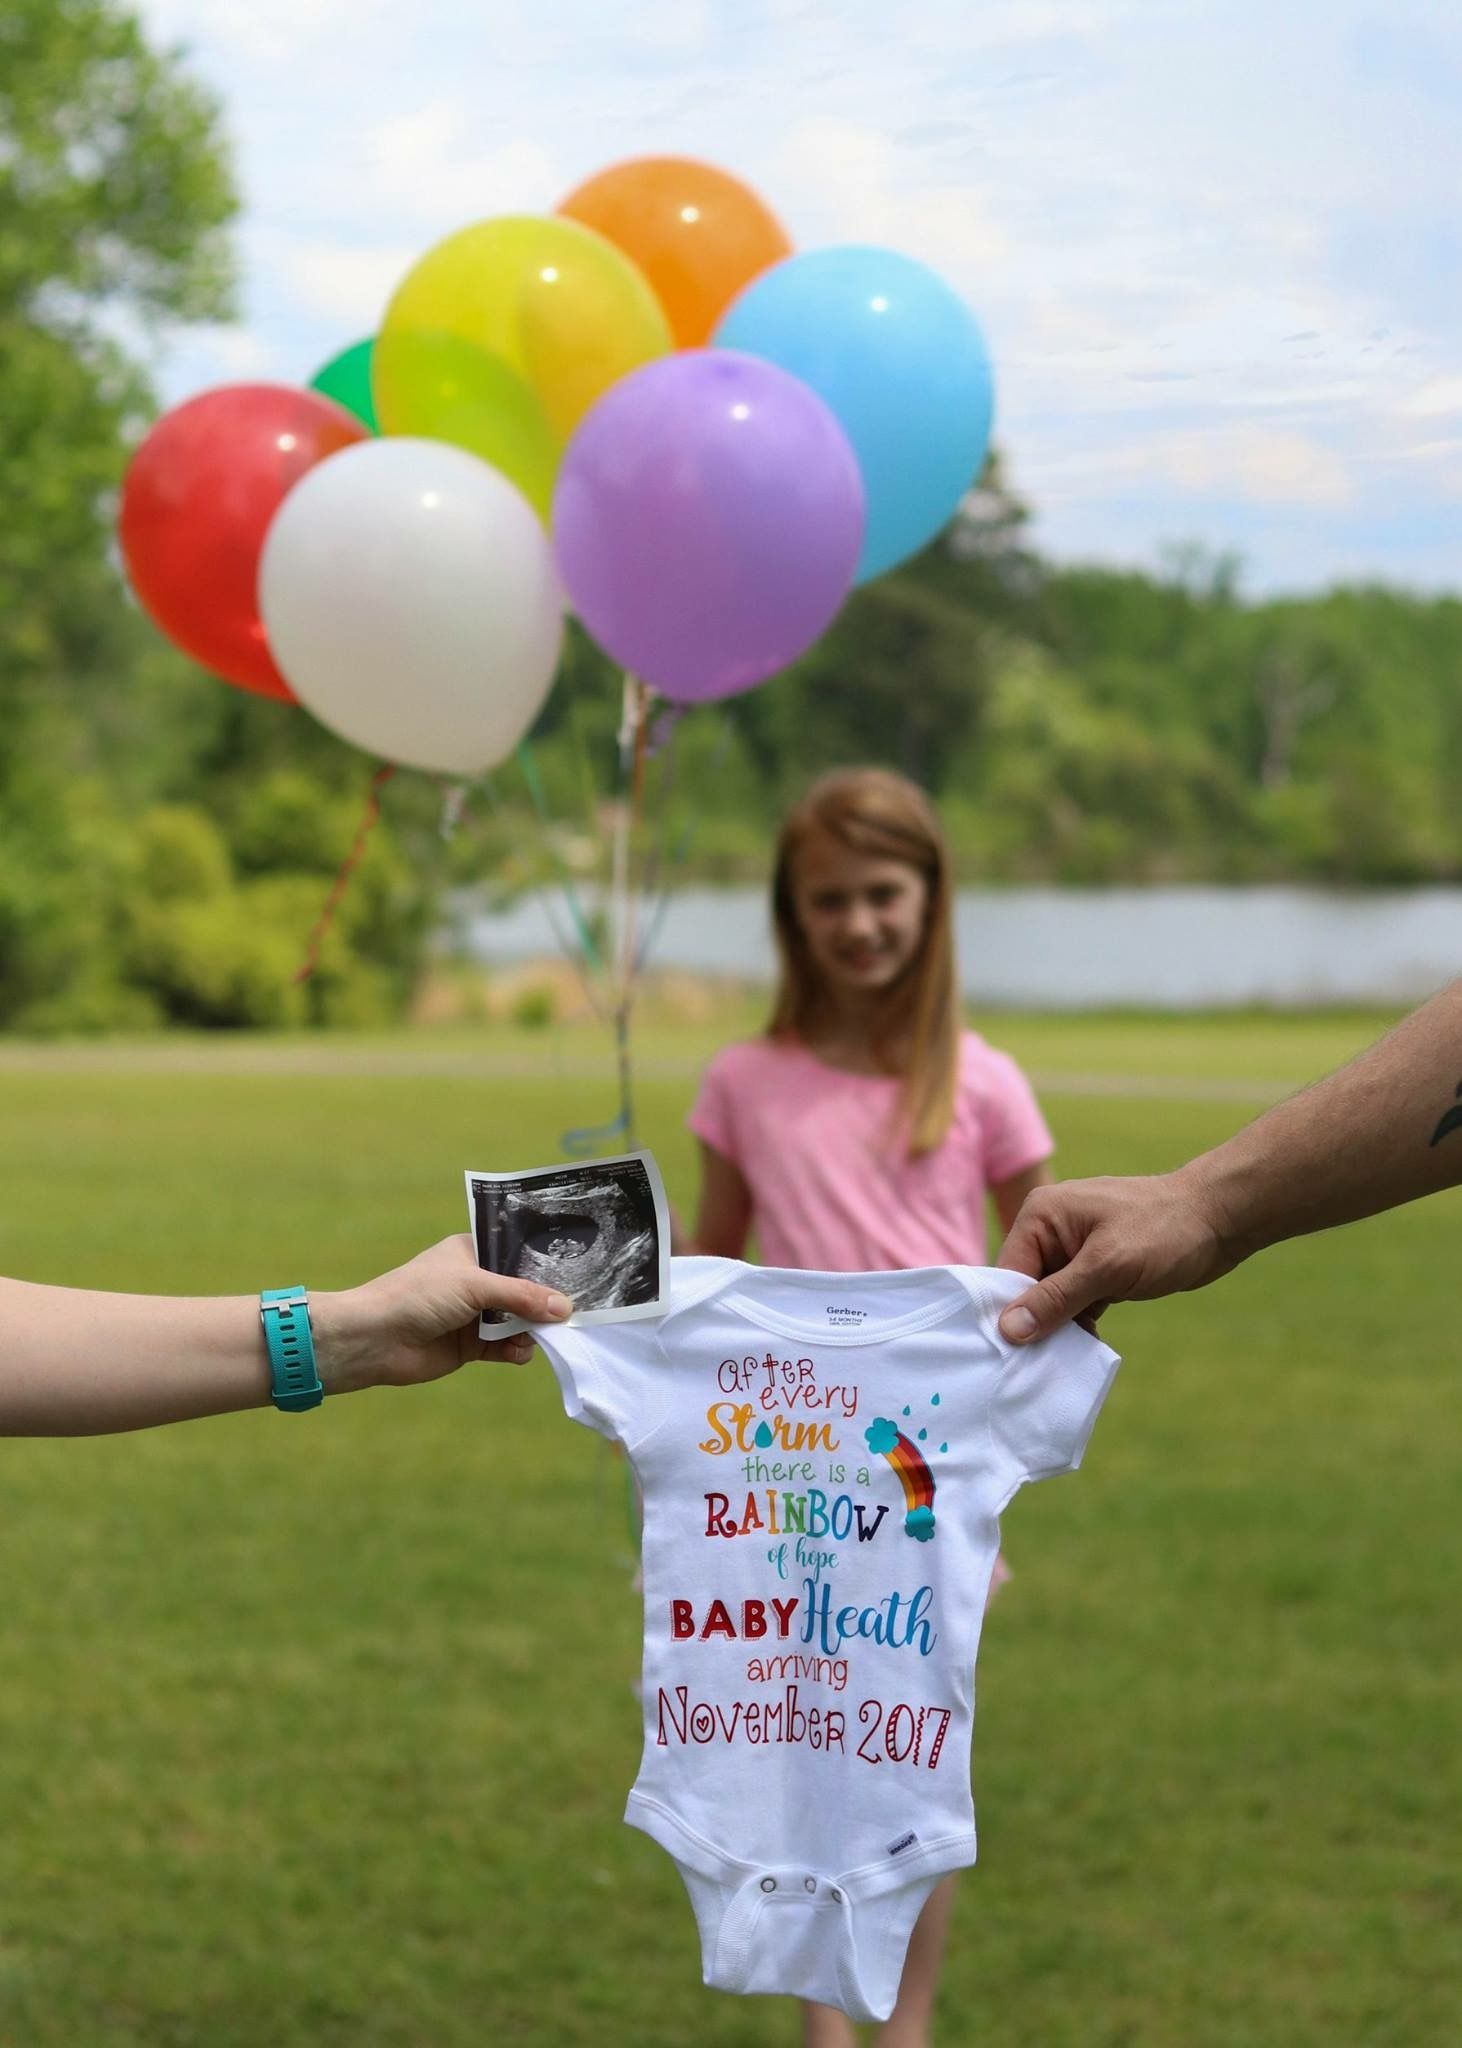 Rainbow Baby Announcement With Images Baby Announcement